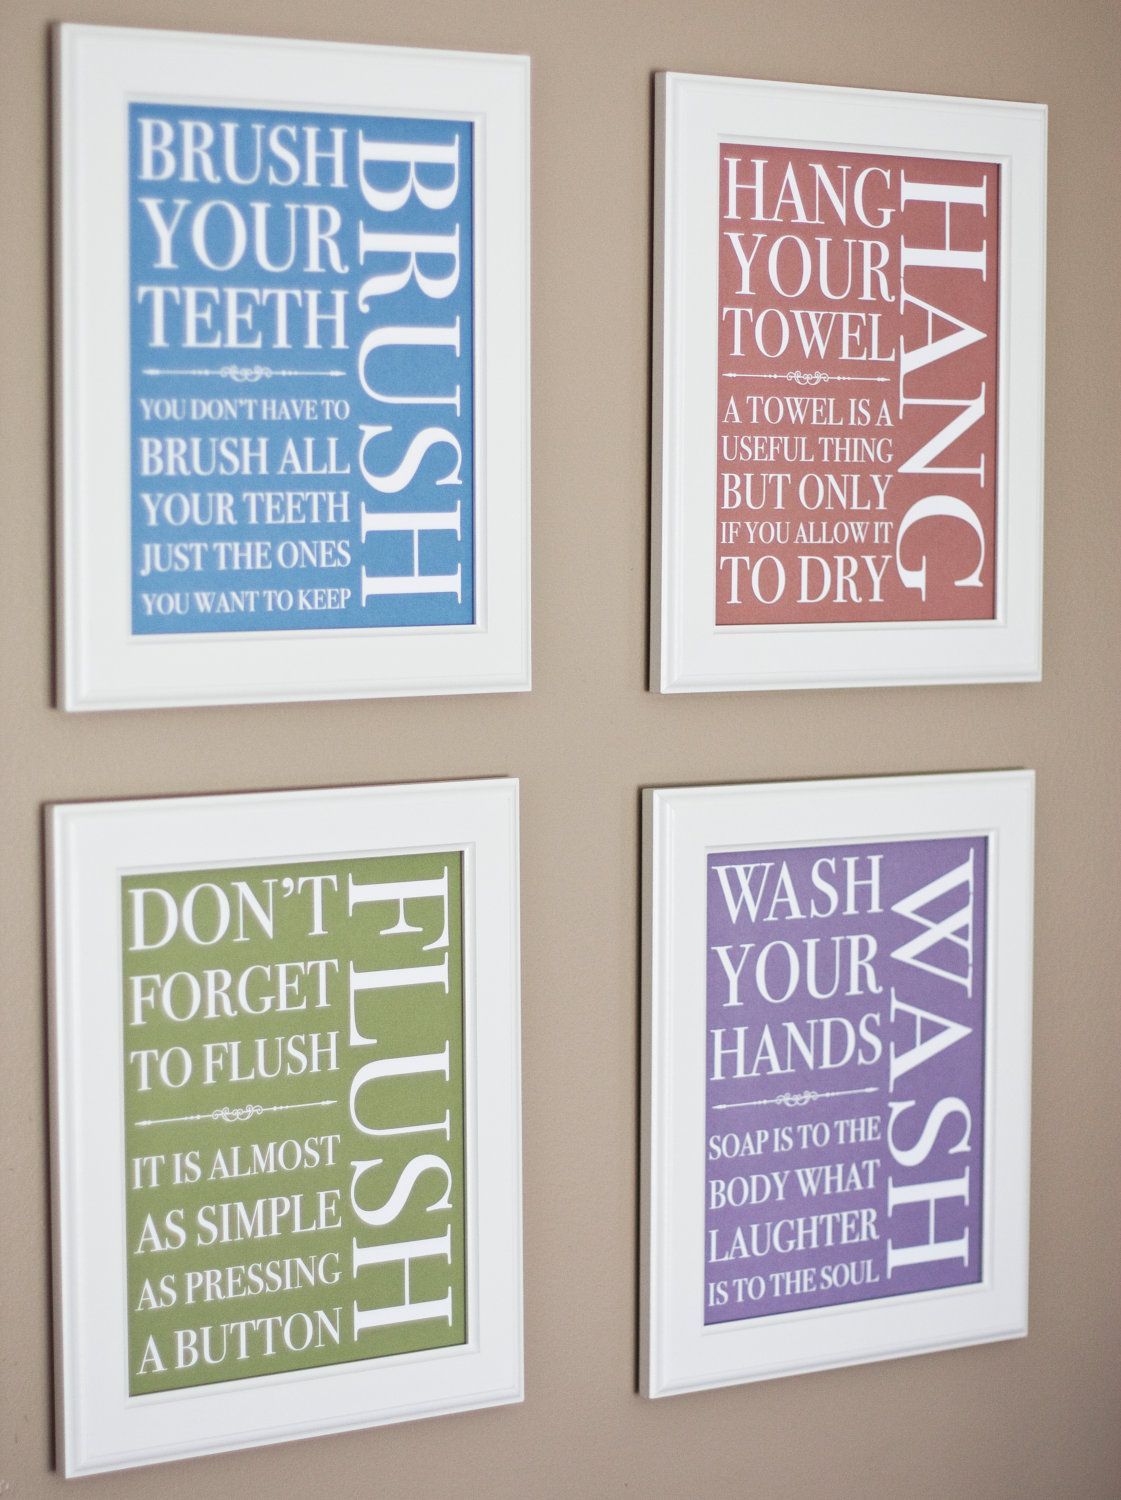 Print Your Own Bathroom Signs Traditional 14 00 Via Etsy With Images Home Crafts Bathroom Signs Home Diy